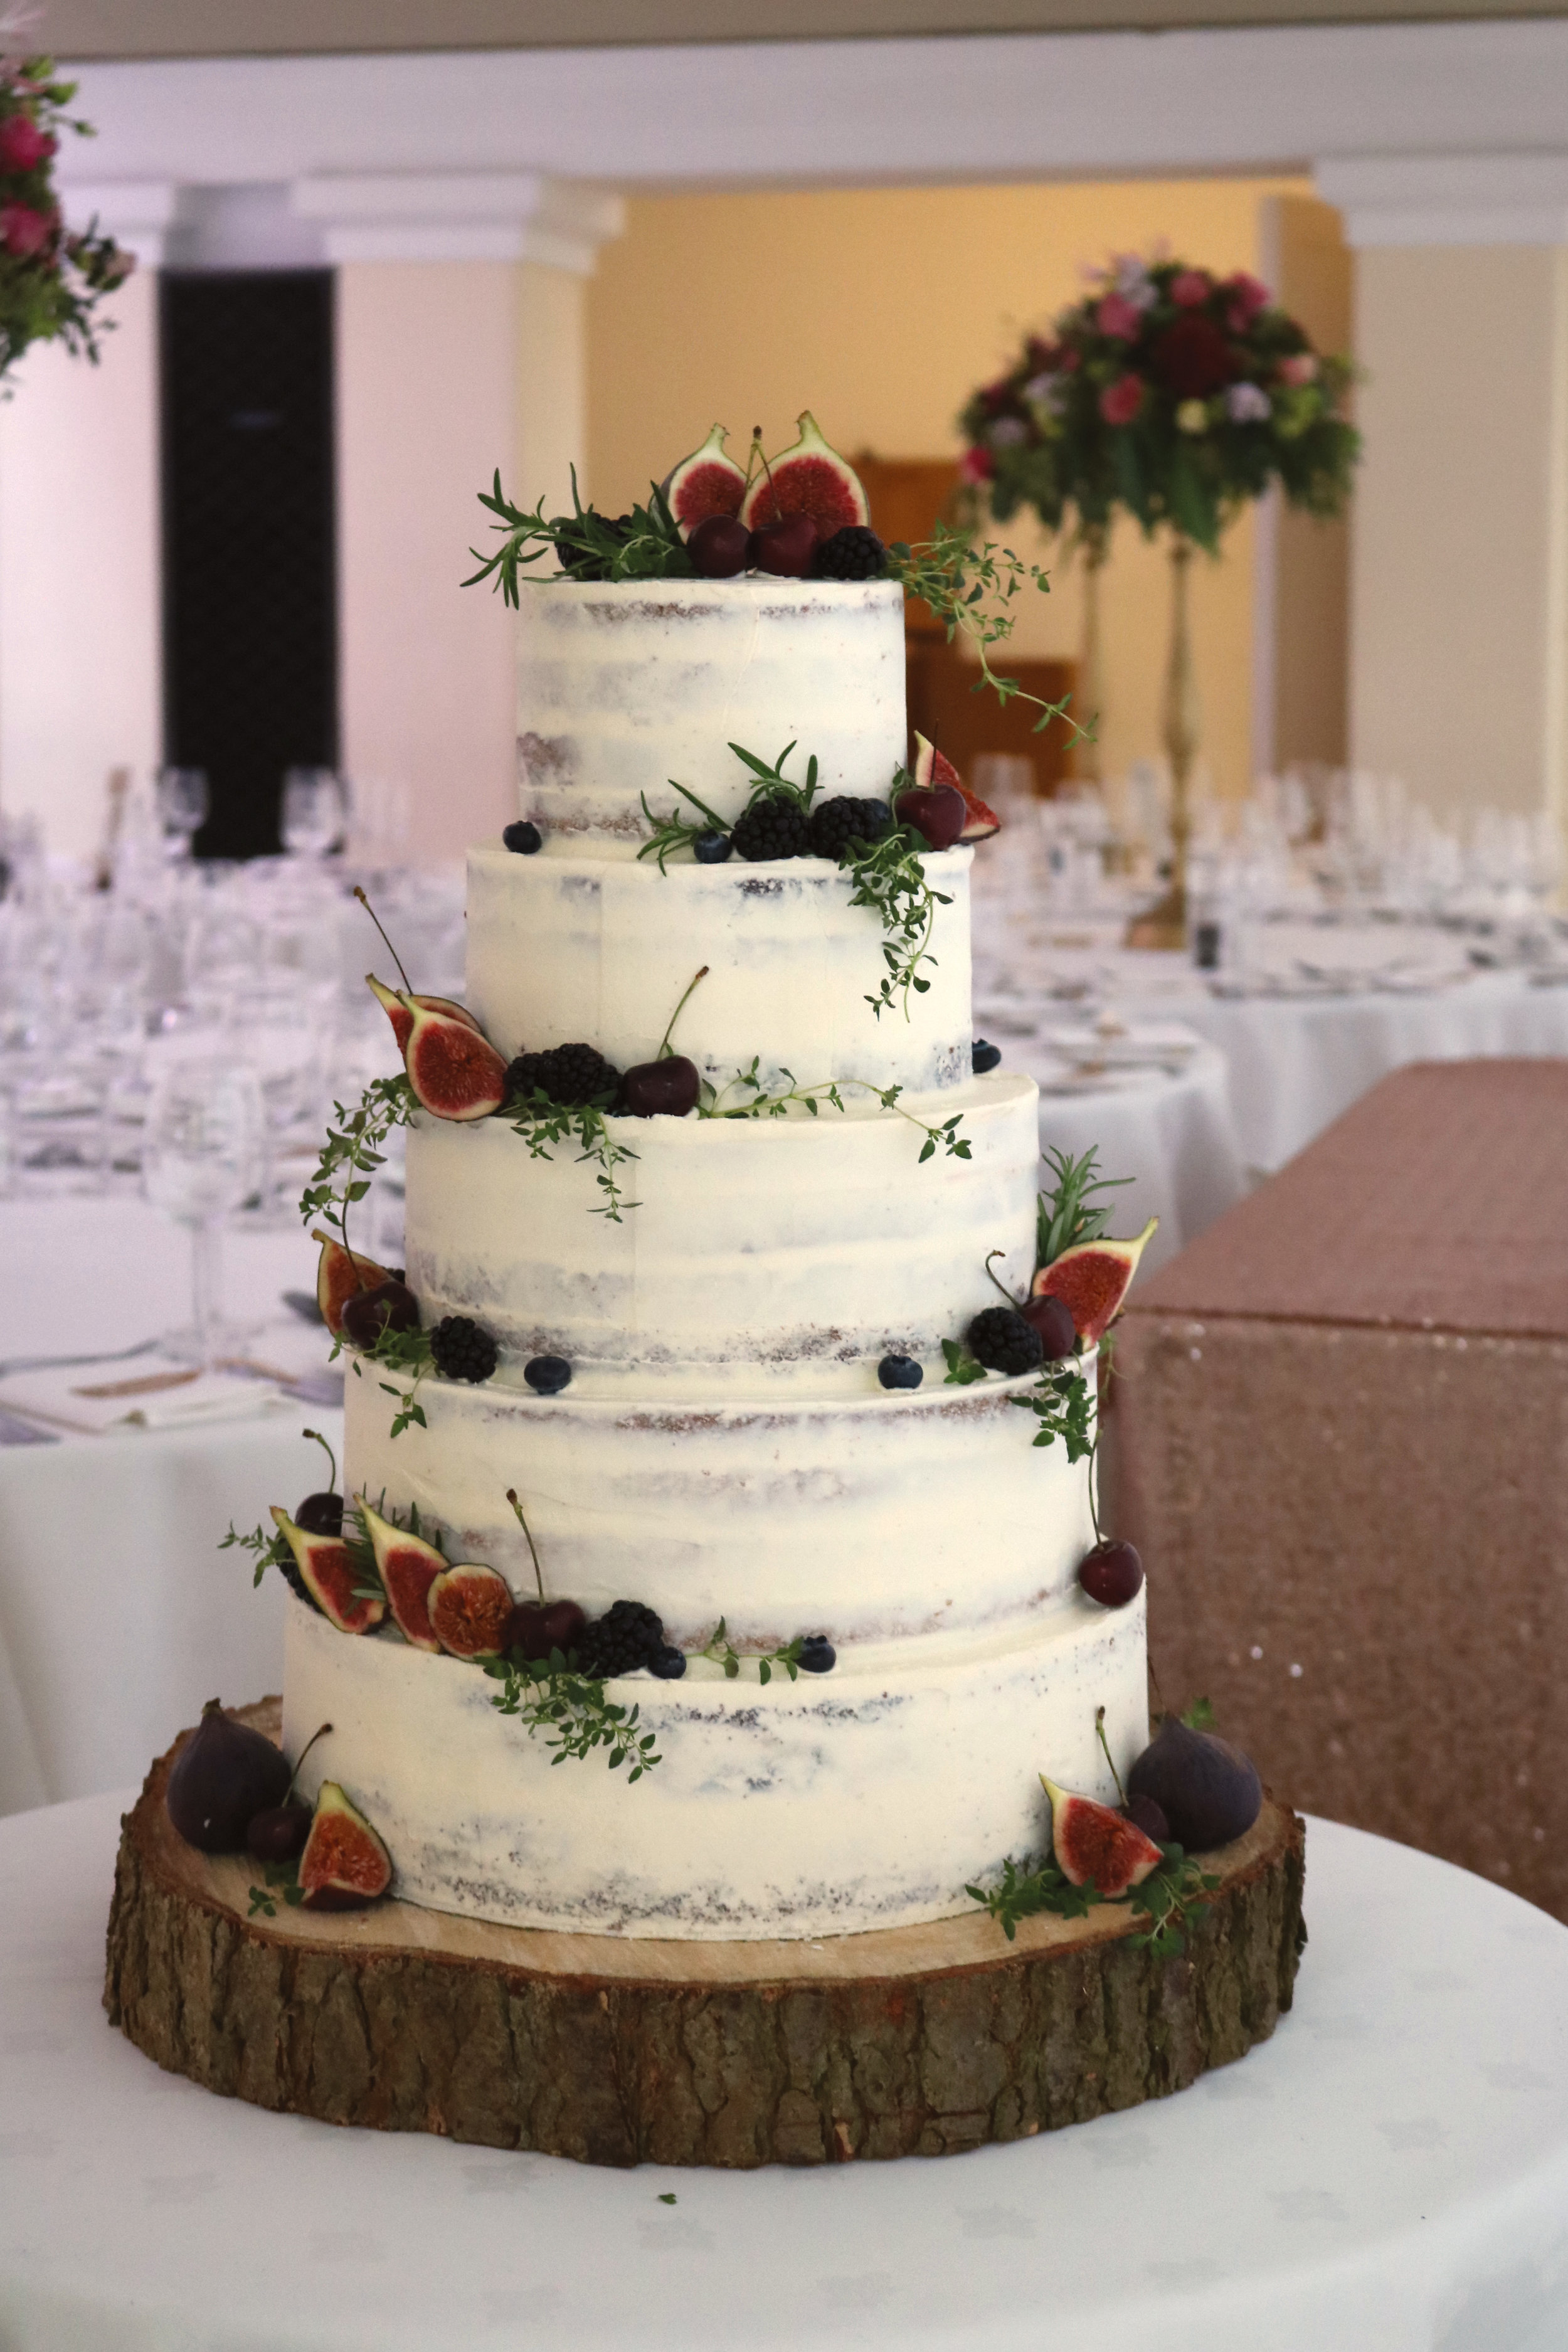 Semi-naked wedding cake finished with fresh fruit (figs, blackberries, cherries etc) at Pembroke Lodge in Richmond Park in West London.